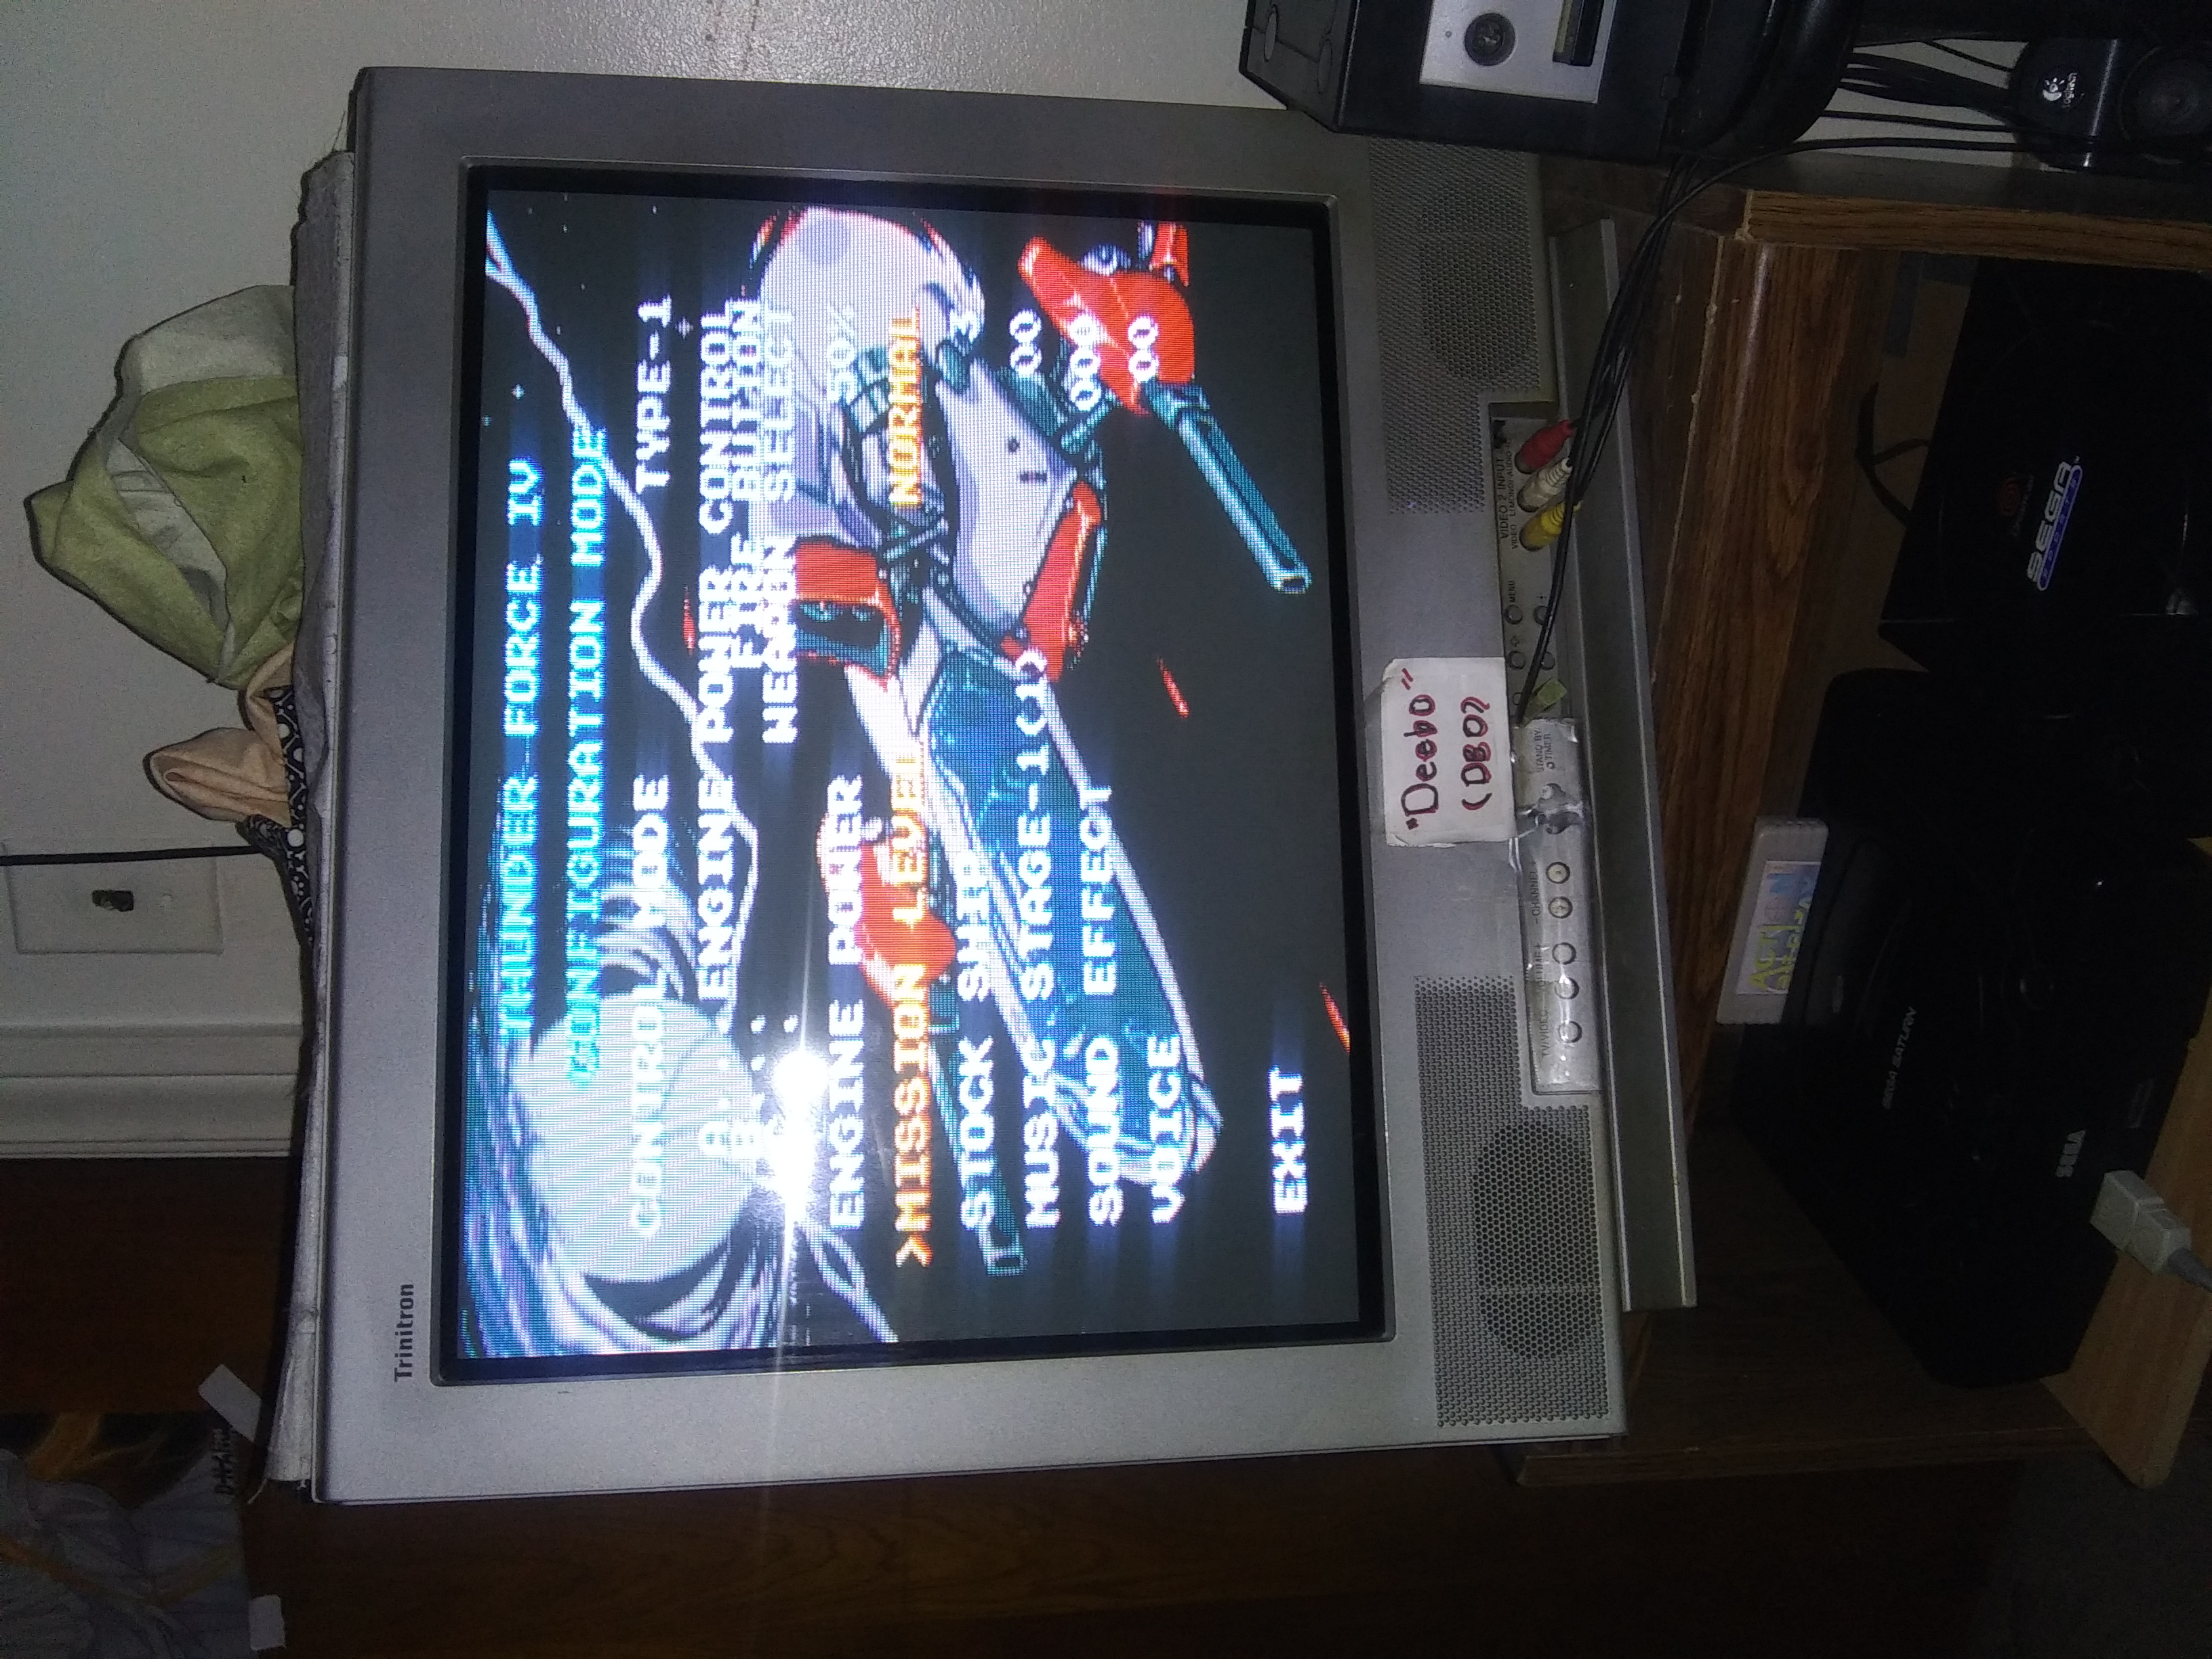 Thunder Force IV [Normal] 2,878,470 points